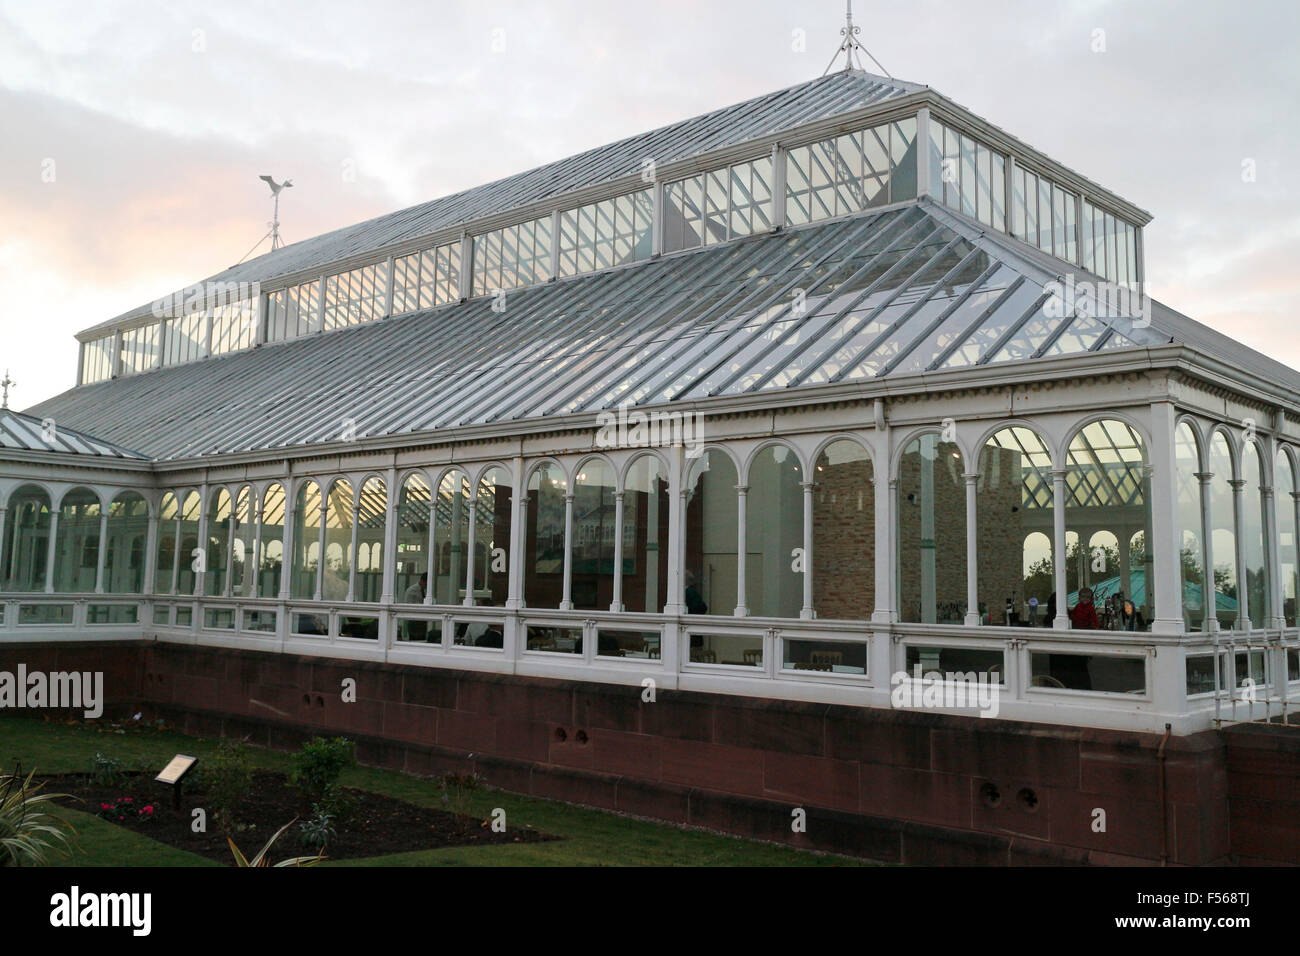 The greenhouse stanley - Isla Gladstone Conservatory In Stanley Park Liverpool England Uk Stock Image